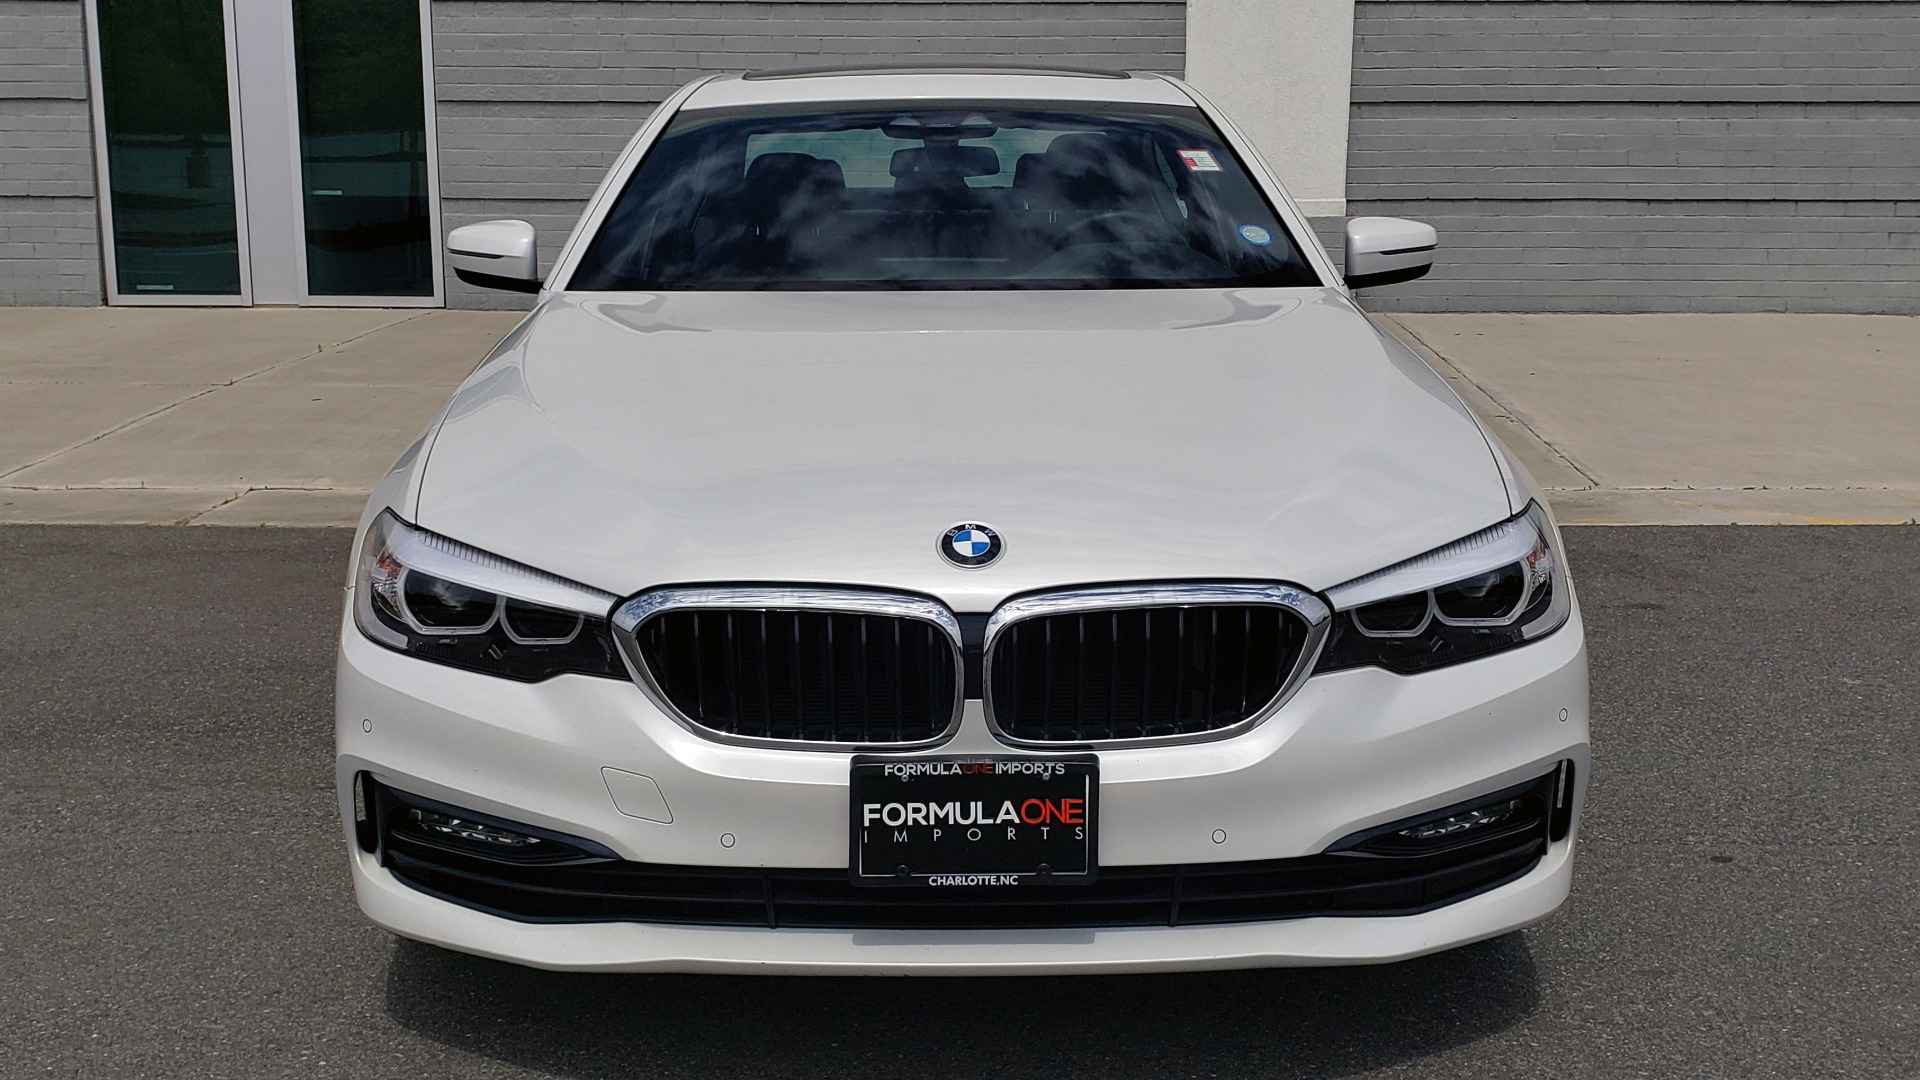 Used 2018 BMW 5 SERIES 530I XDRIVE PREMIUM / NAV / DRVR ASST / PARK ASST / H/K SND for sale $32,795 at Formula Imports in Charlotte NC 28227 20